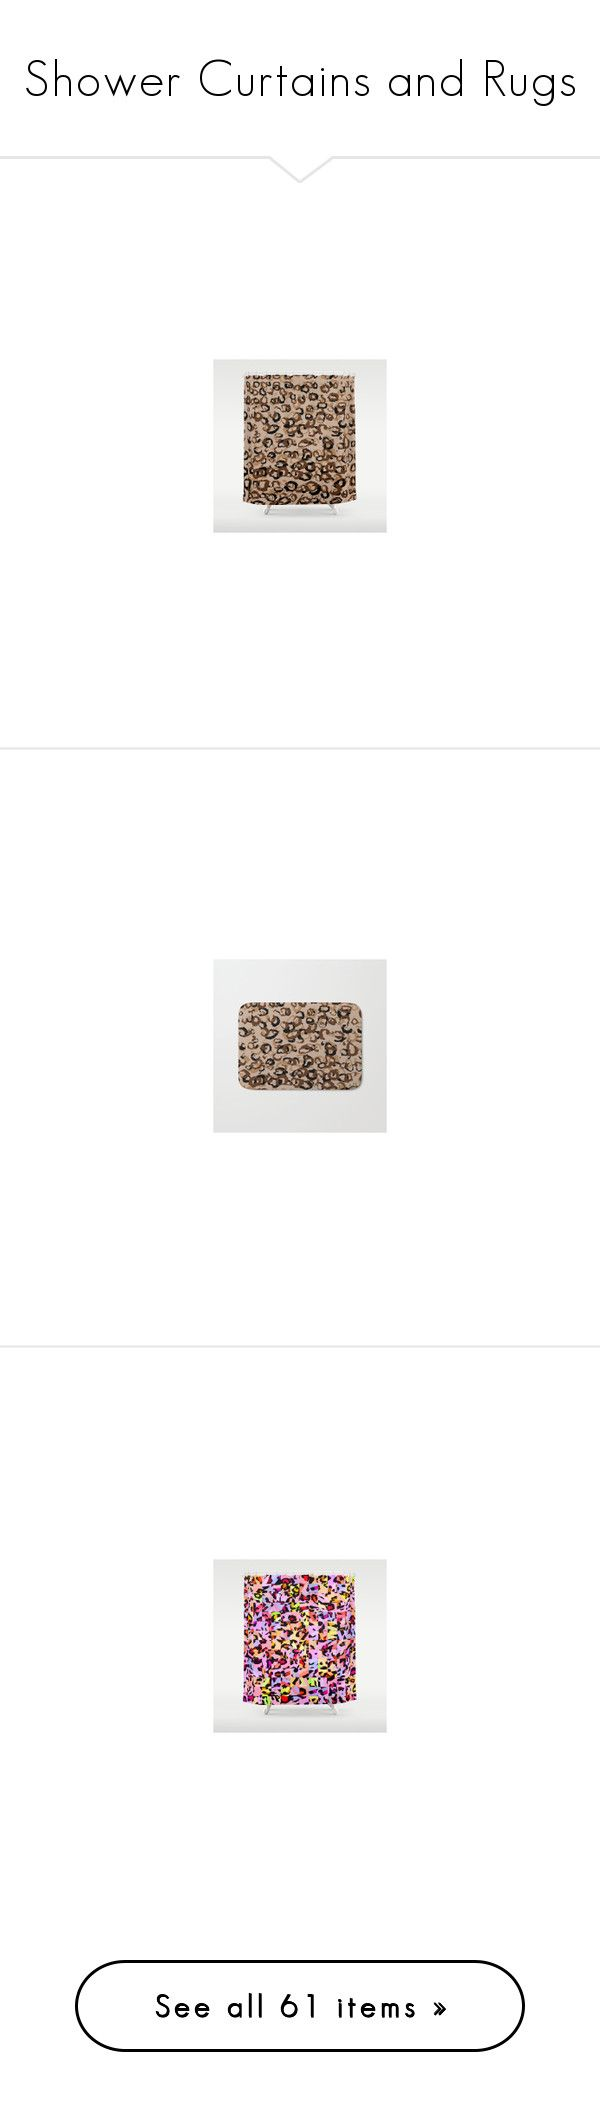 Shower Curtains and Rugs by christy-leigh-official on Polyvore featuring home, bed & bath, bath, shower curtains, leopard shower curtains, bath rugs, leopard bathroom rugs, leopard bath mat, colorful shower curtains and multi colored shower curtains